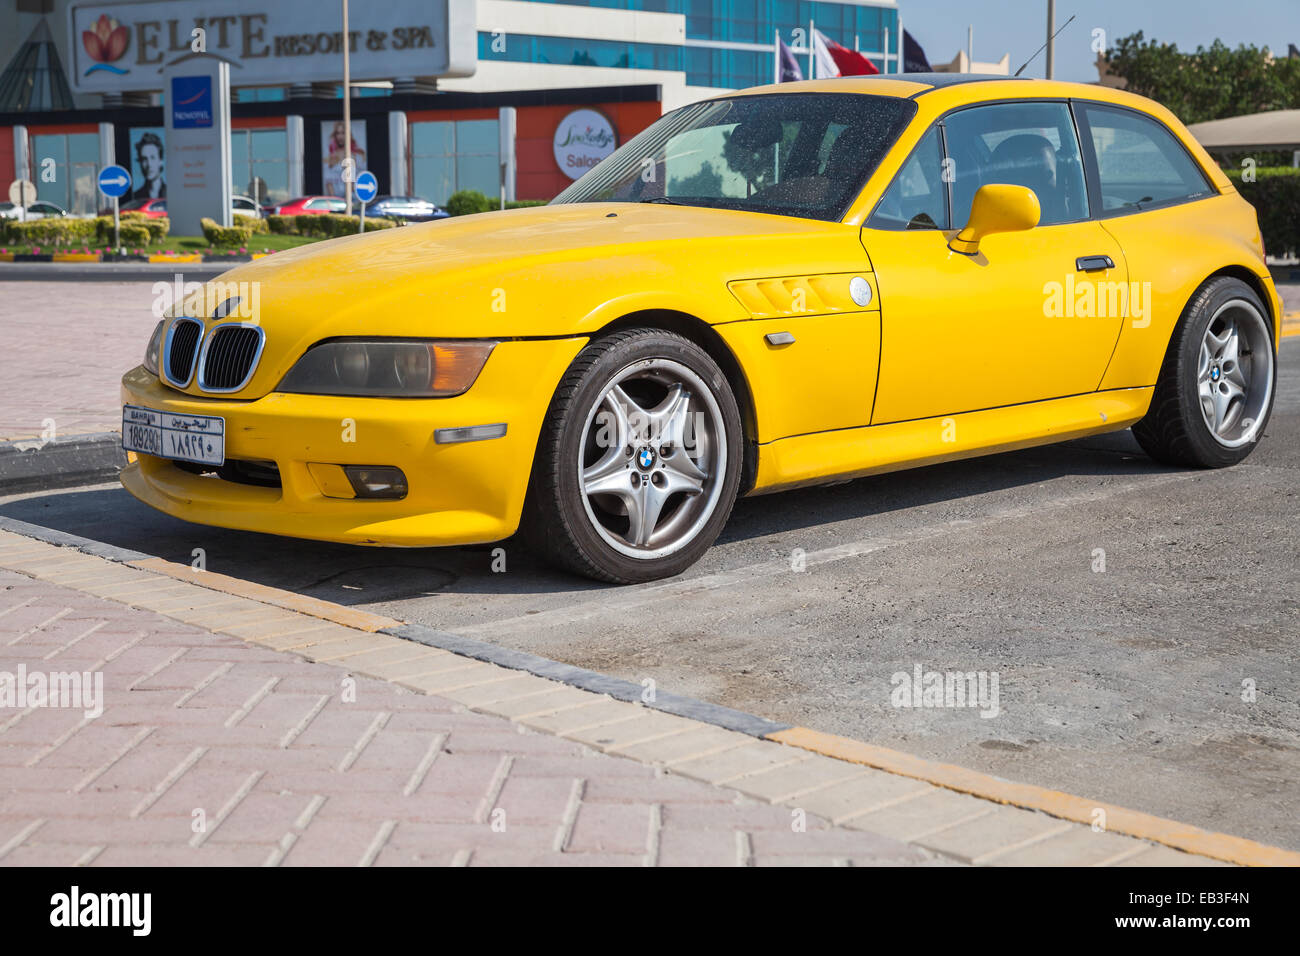 Bmw Z3 M Coupe Stock Photos Bmw Z3 M Coupe Stock Images Alamy